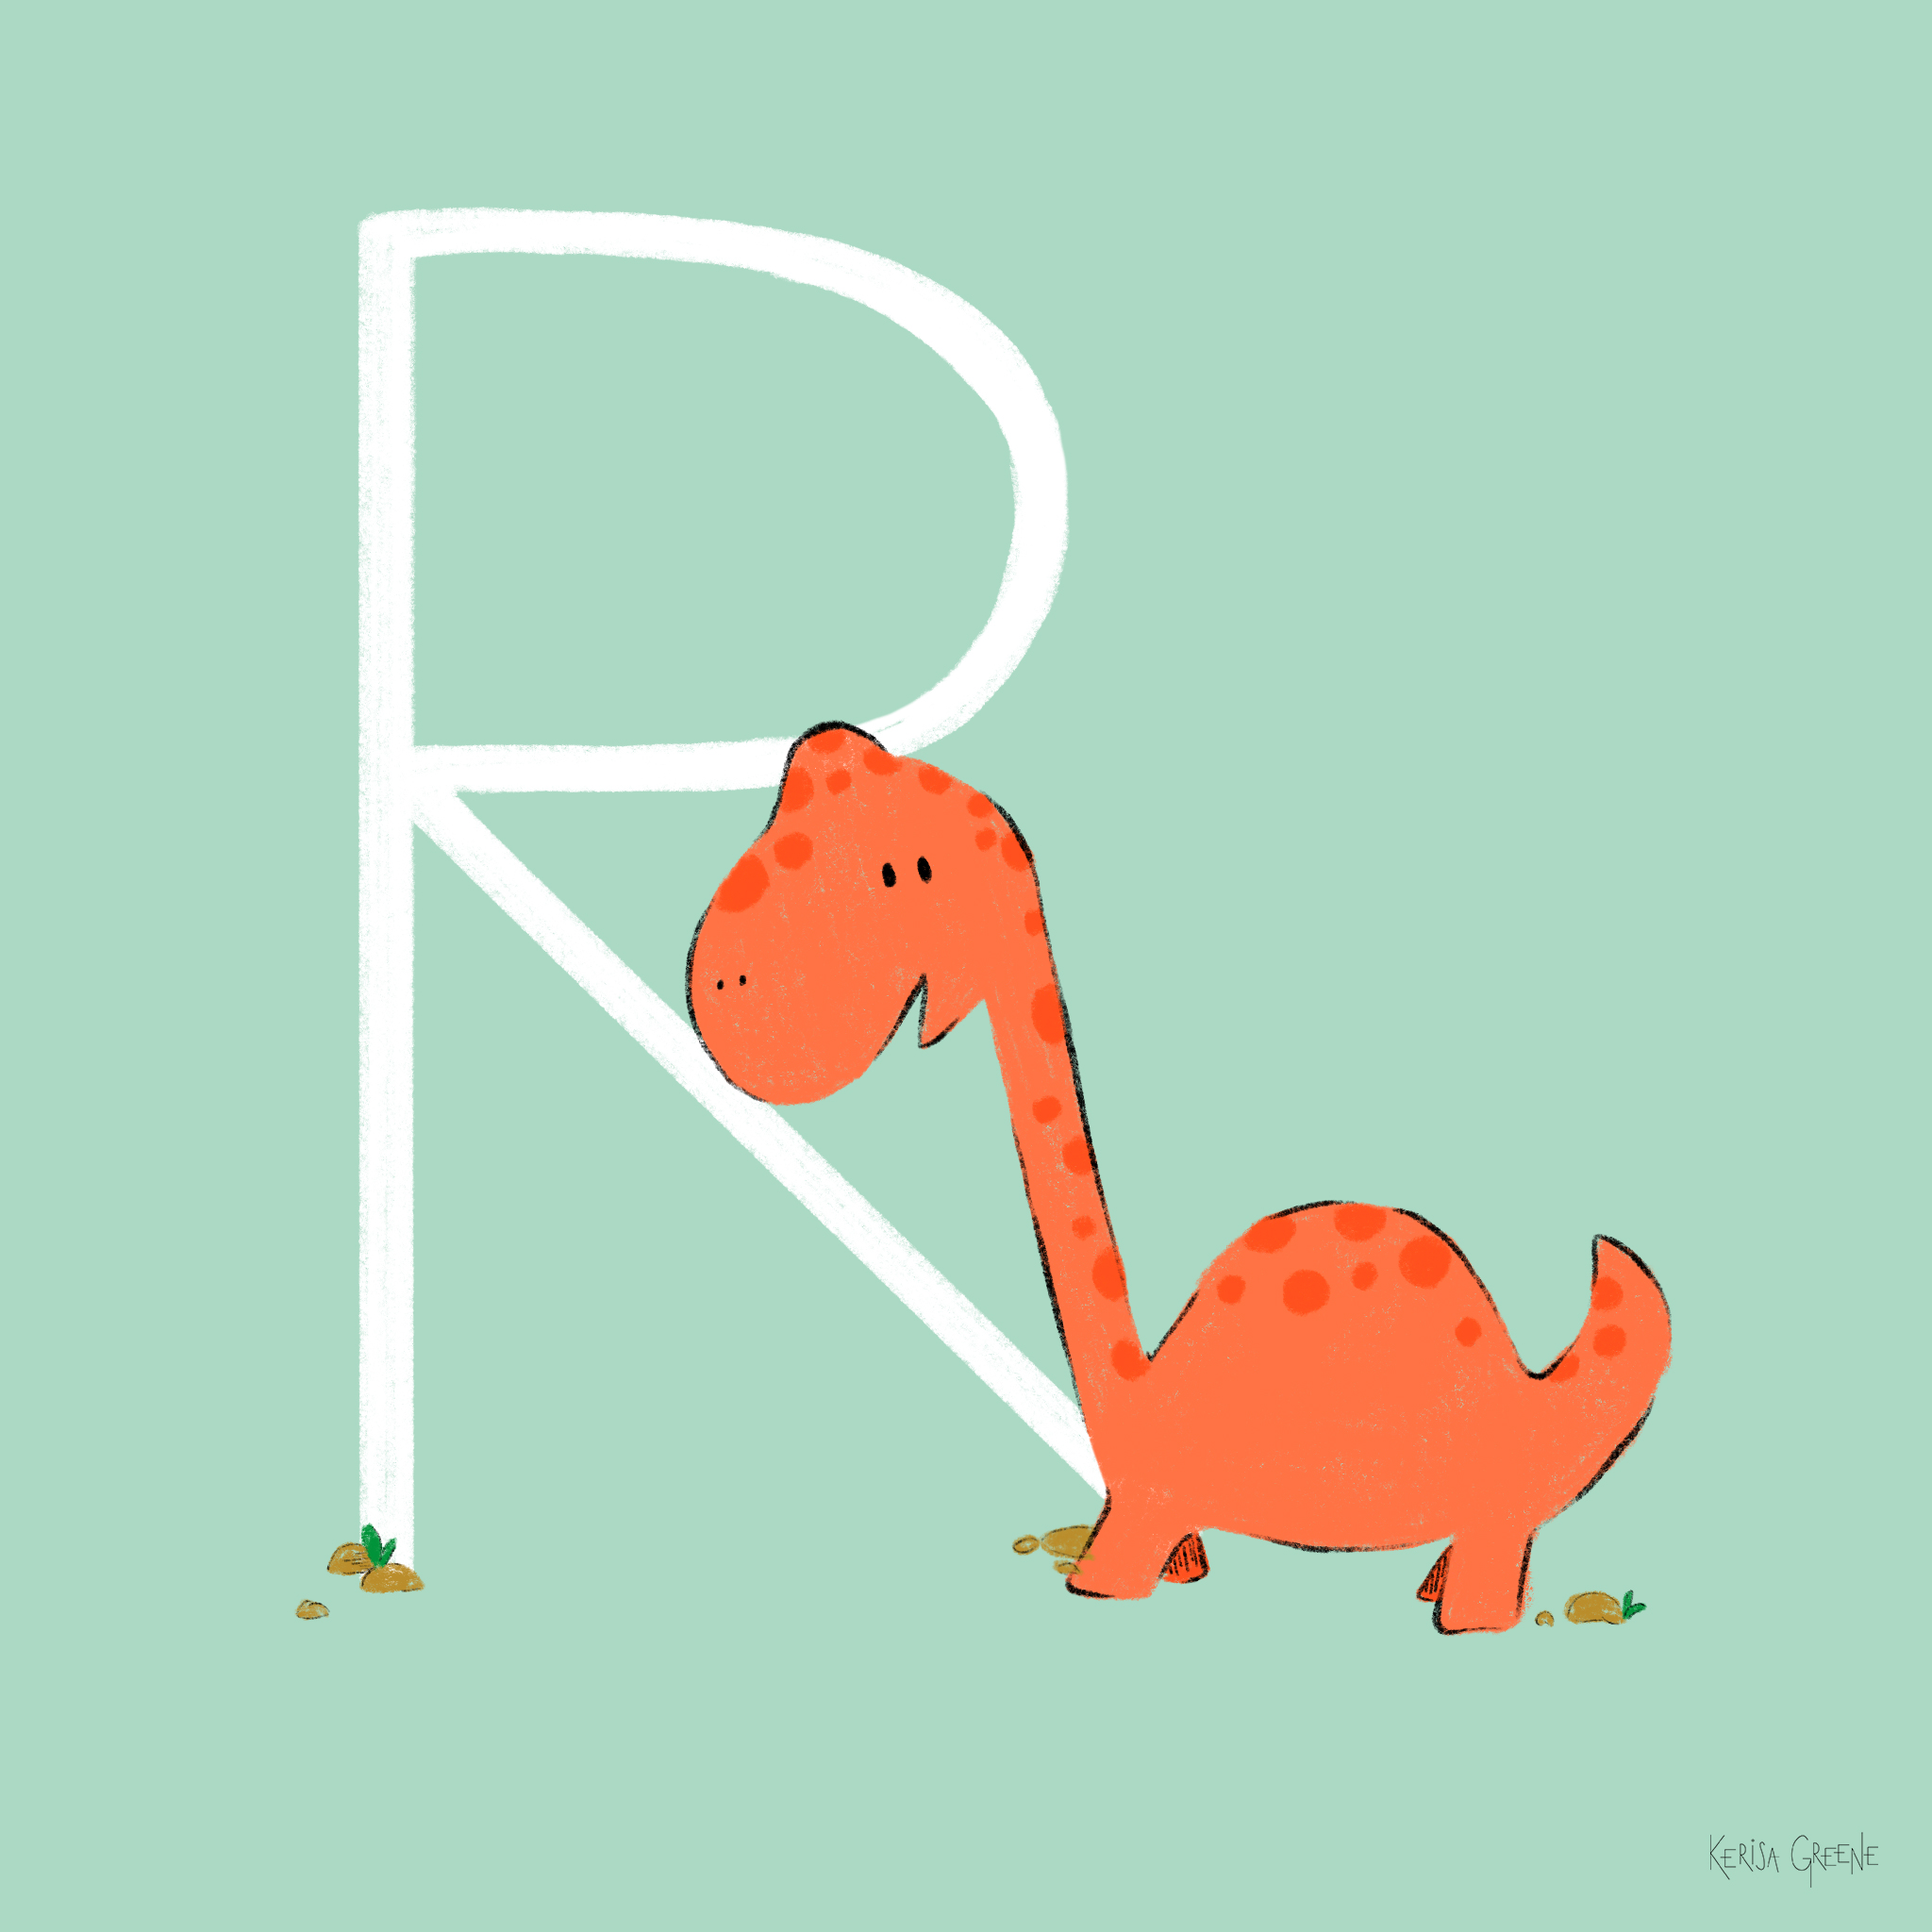 R is for Rhoetosaurus   This dino is an herbivore who would have lived in Australia during the Jurassic period.